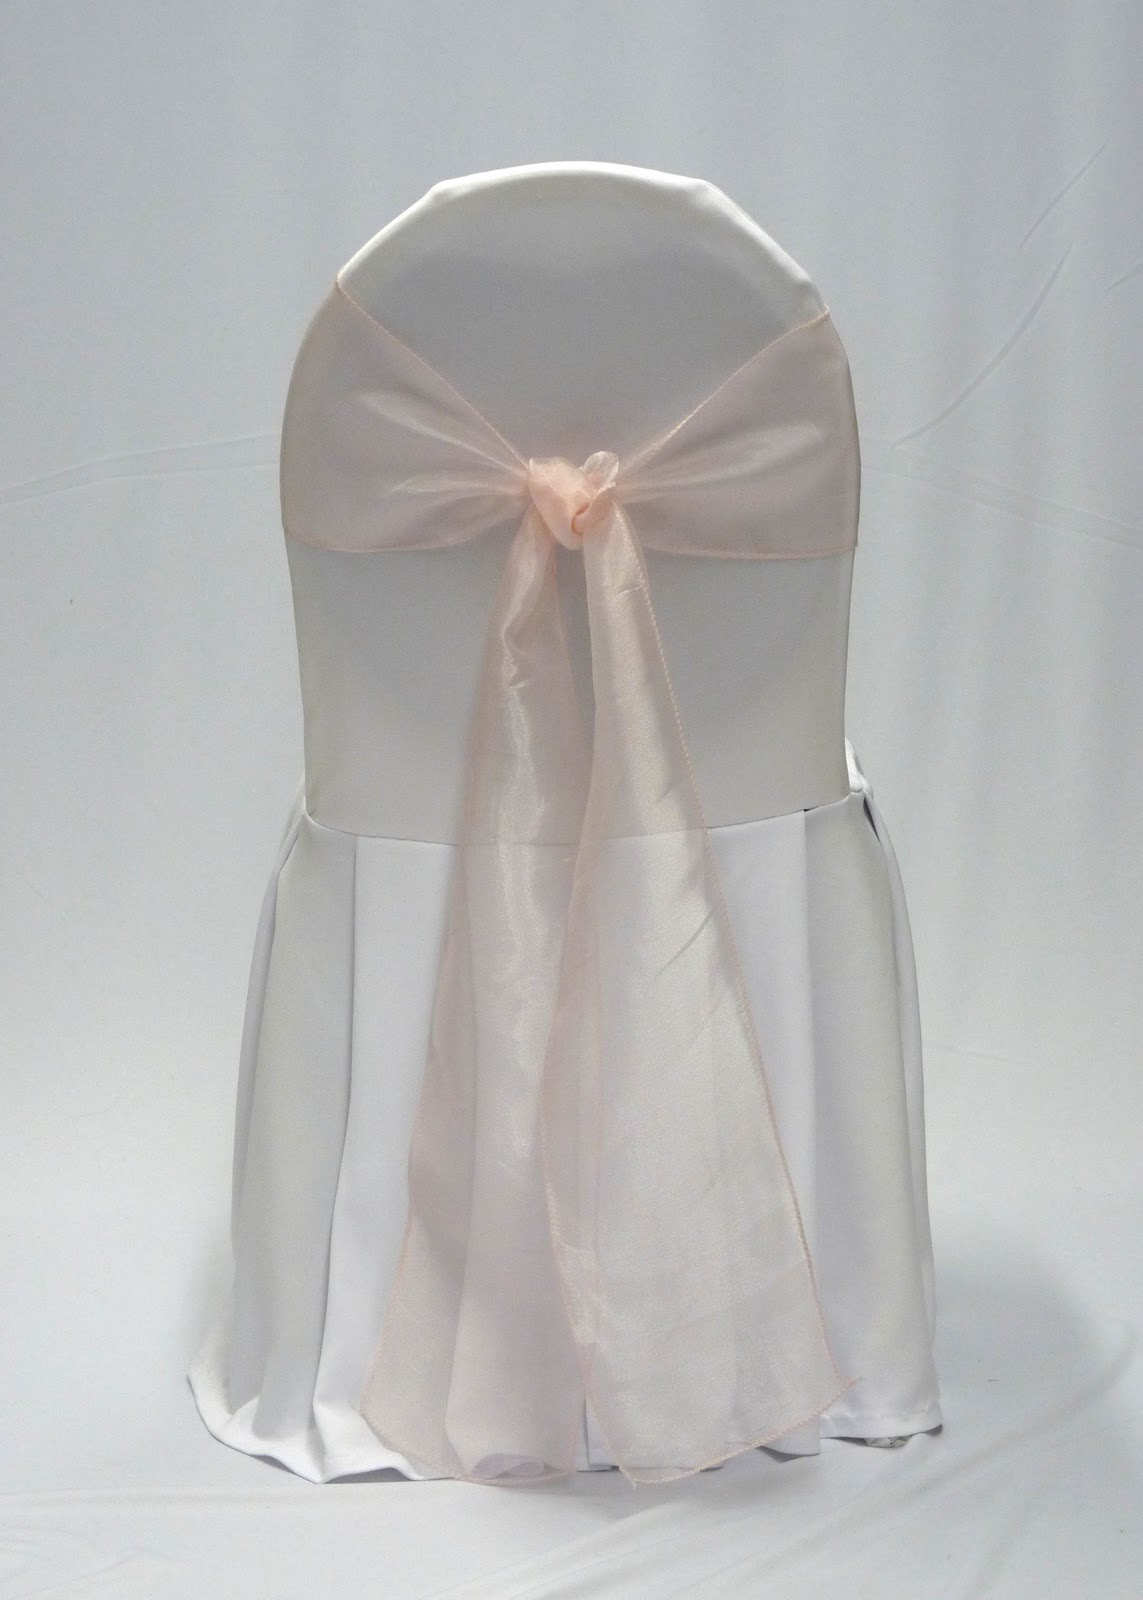 RENT RENT CHAIR COVERS TORONTO CHAIR COVER